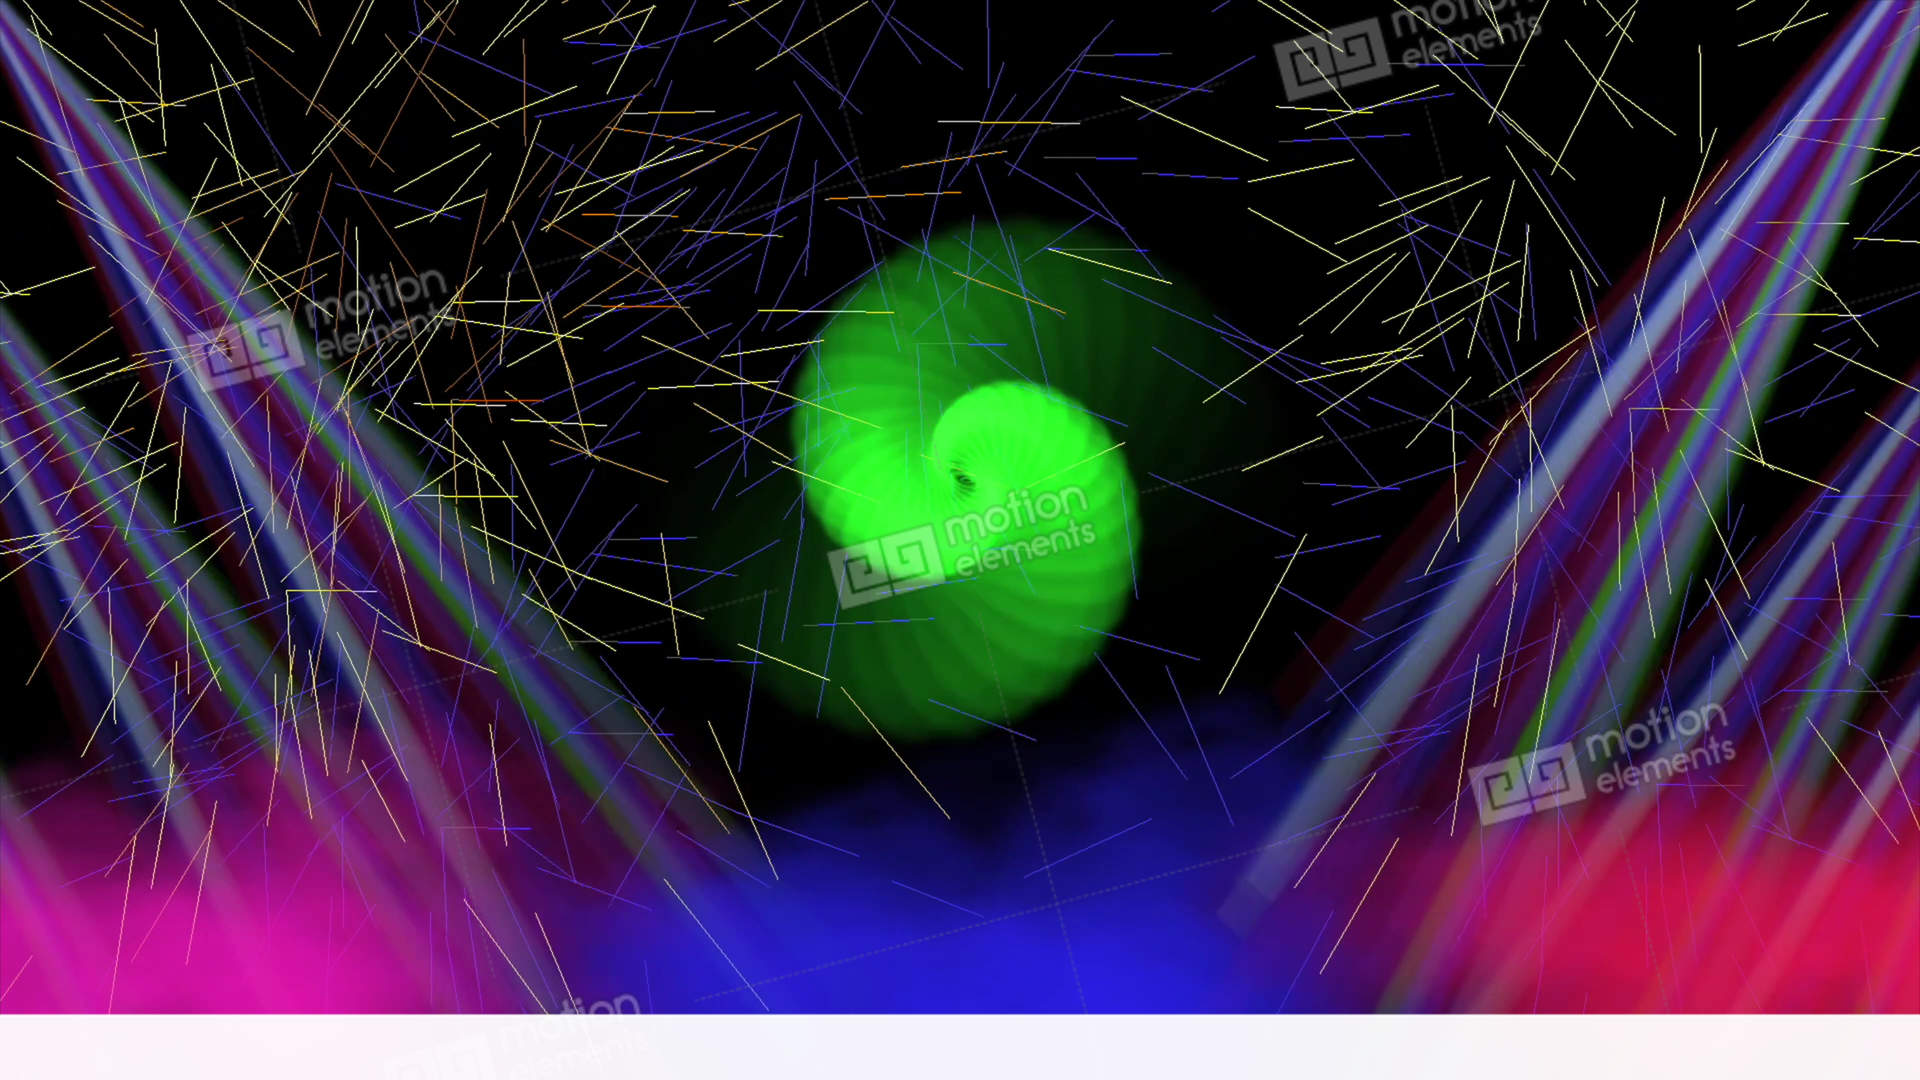 VJ LOOPS WITH DISCO LIGHTS BACKGROUND In 4K Stock Animation | 11672009 for Animated Disco Lights Background  17lplyp